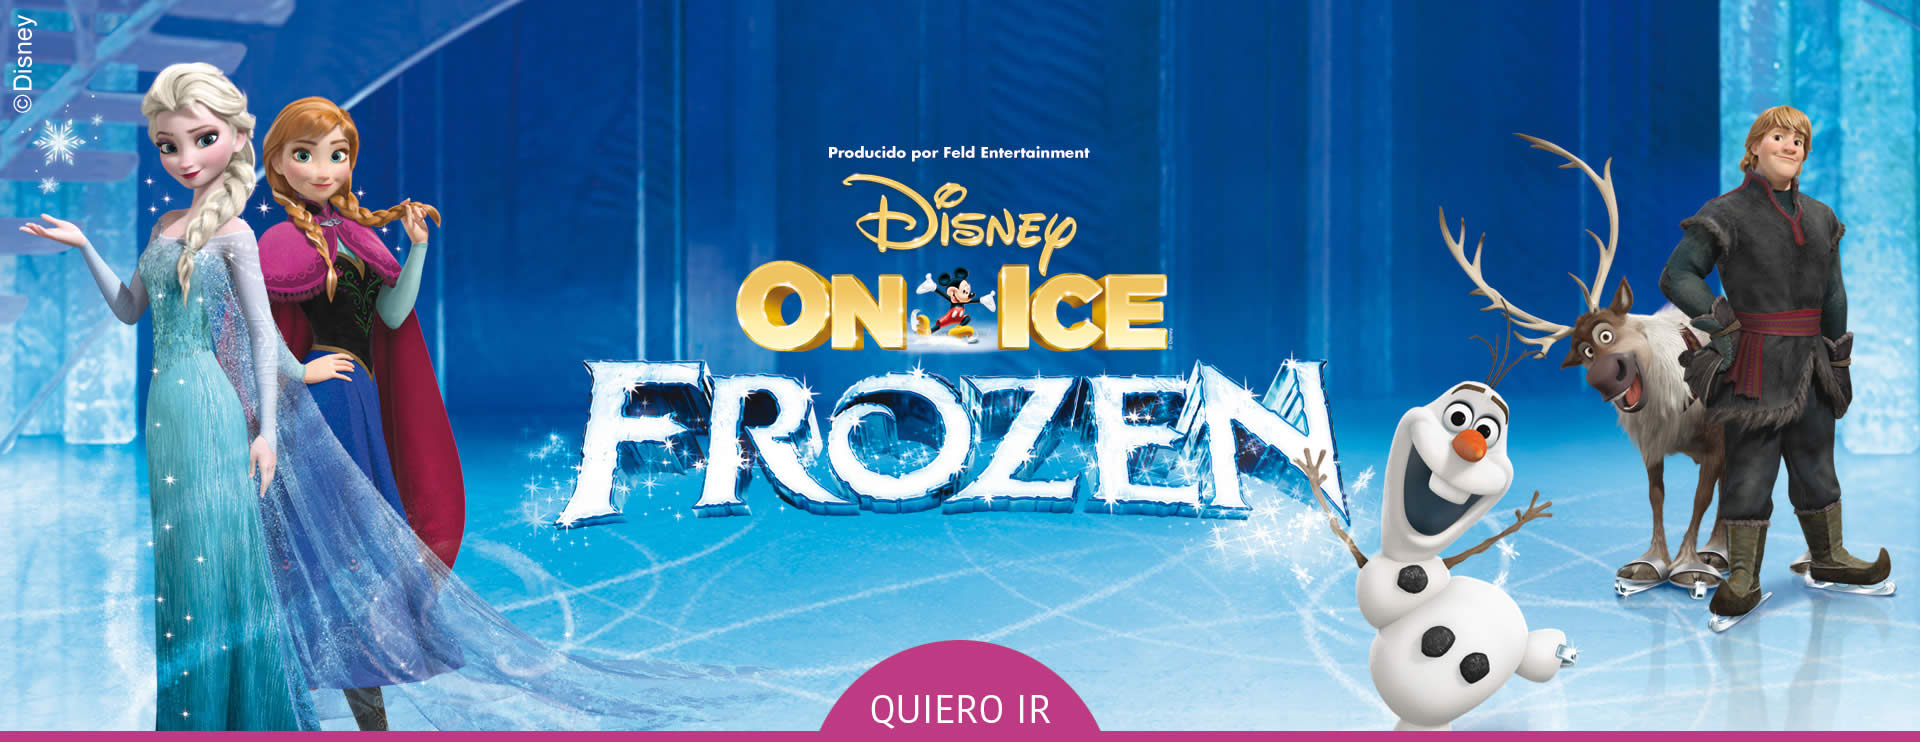 Disney on Ice 2017 - Frozen